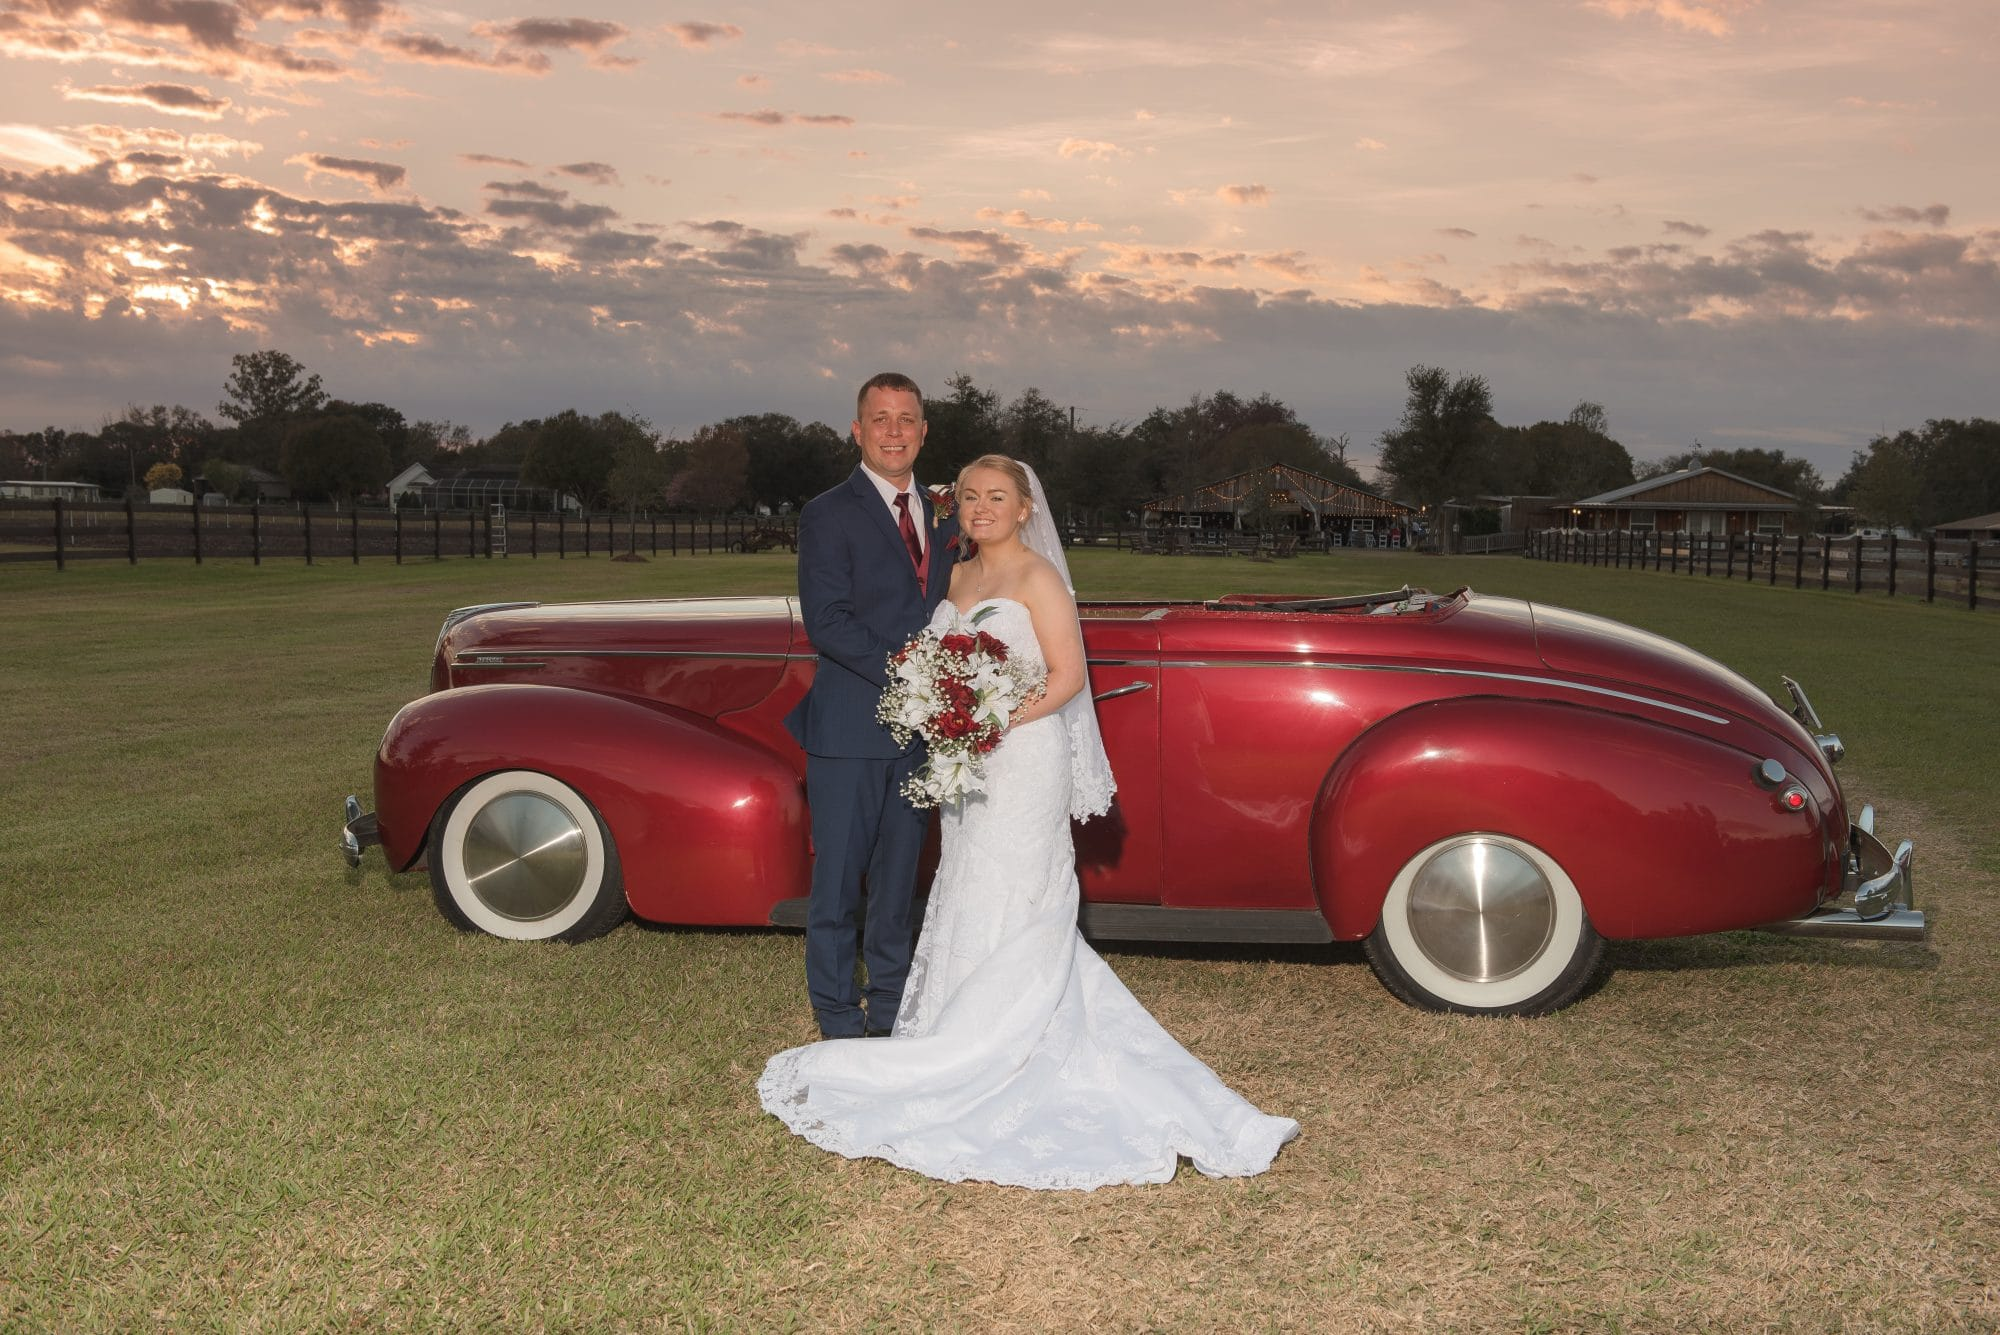 Bride and groom next to red vintage car.